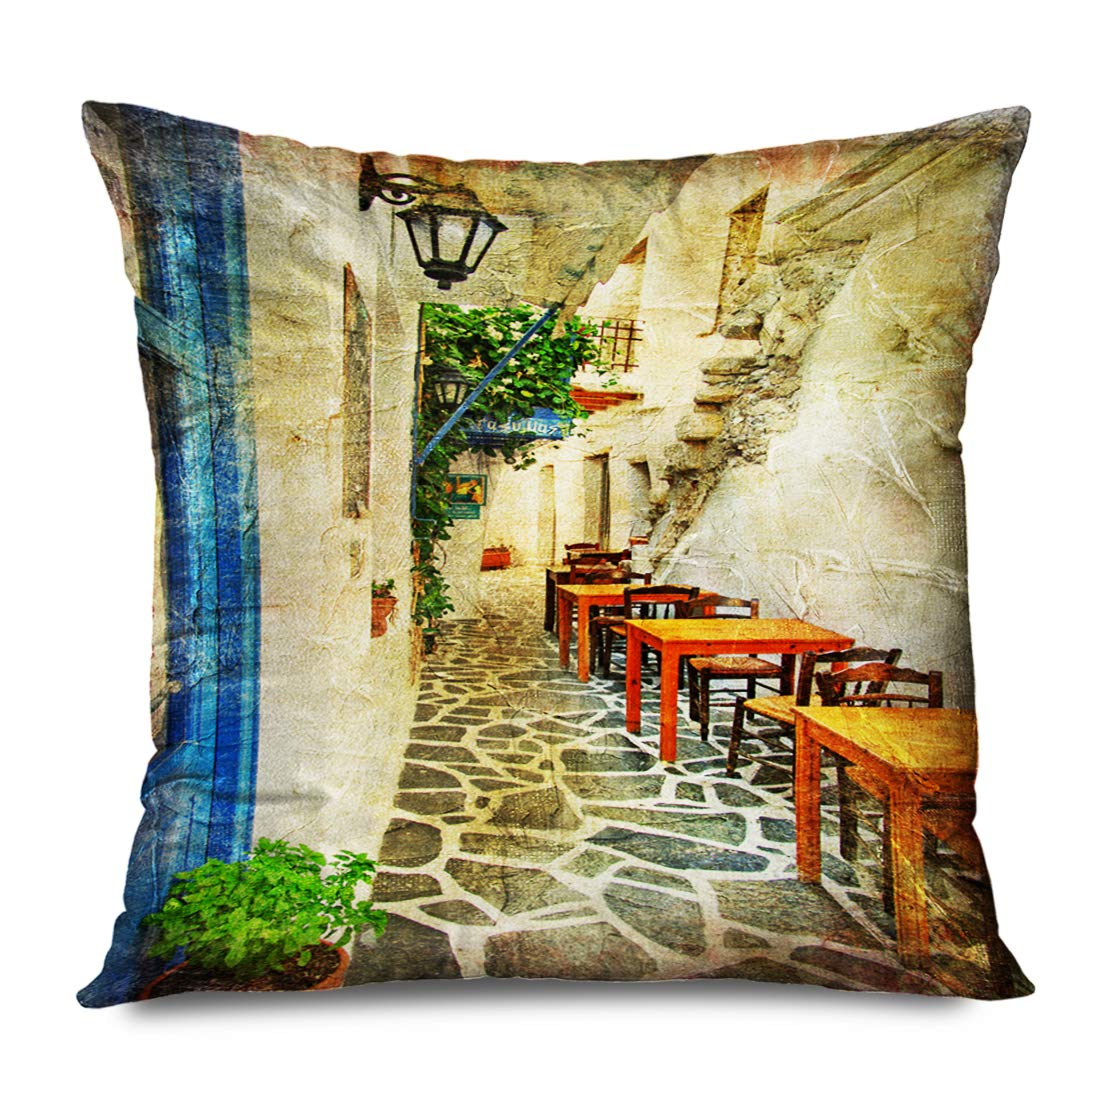 Ahawoso Throw Pillow Cover Square 18x18 Inches Old Traditional Greek Tavernas Painting in Oil Greece Vintage Restaurant Historical Naxos Crete Decorative Zipper Pillowcase Home Decor Cushion Case